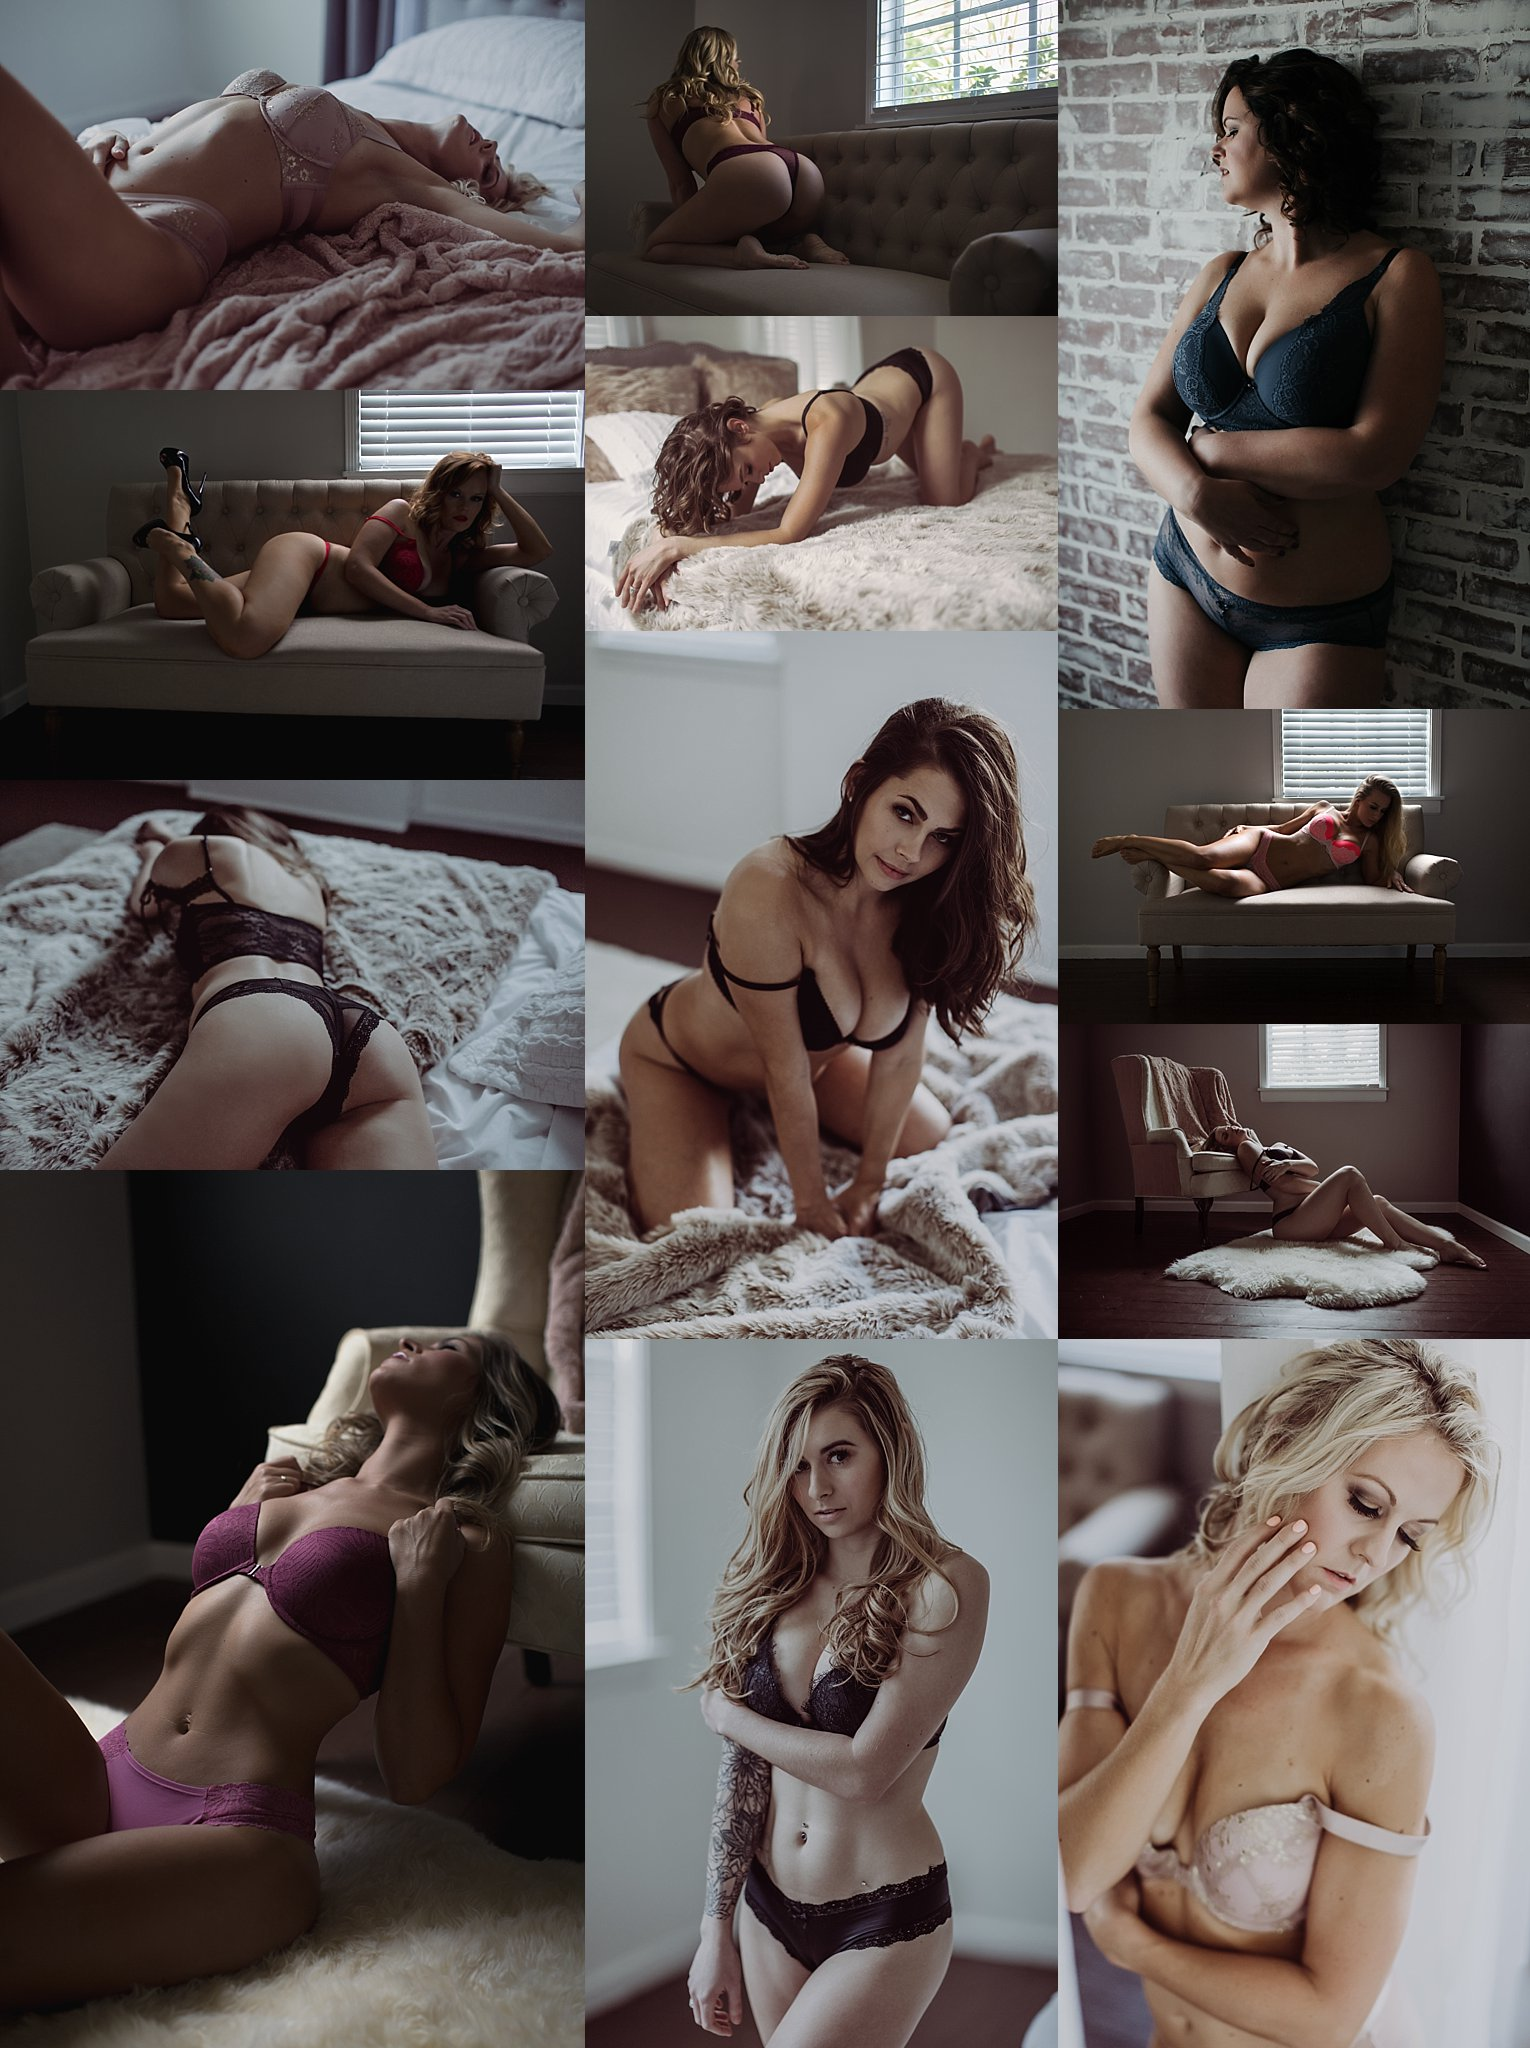 bra and panty outfit ideas with posing